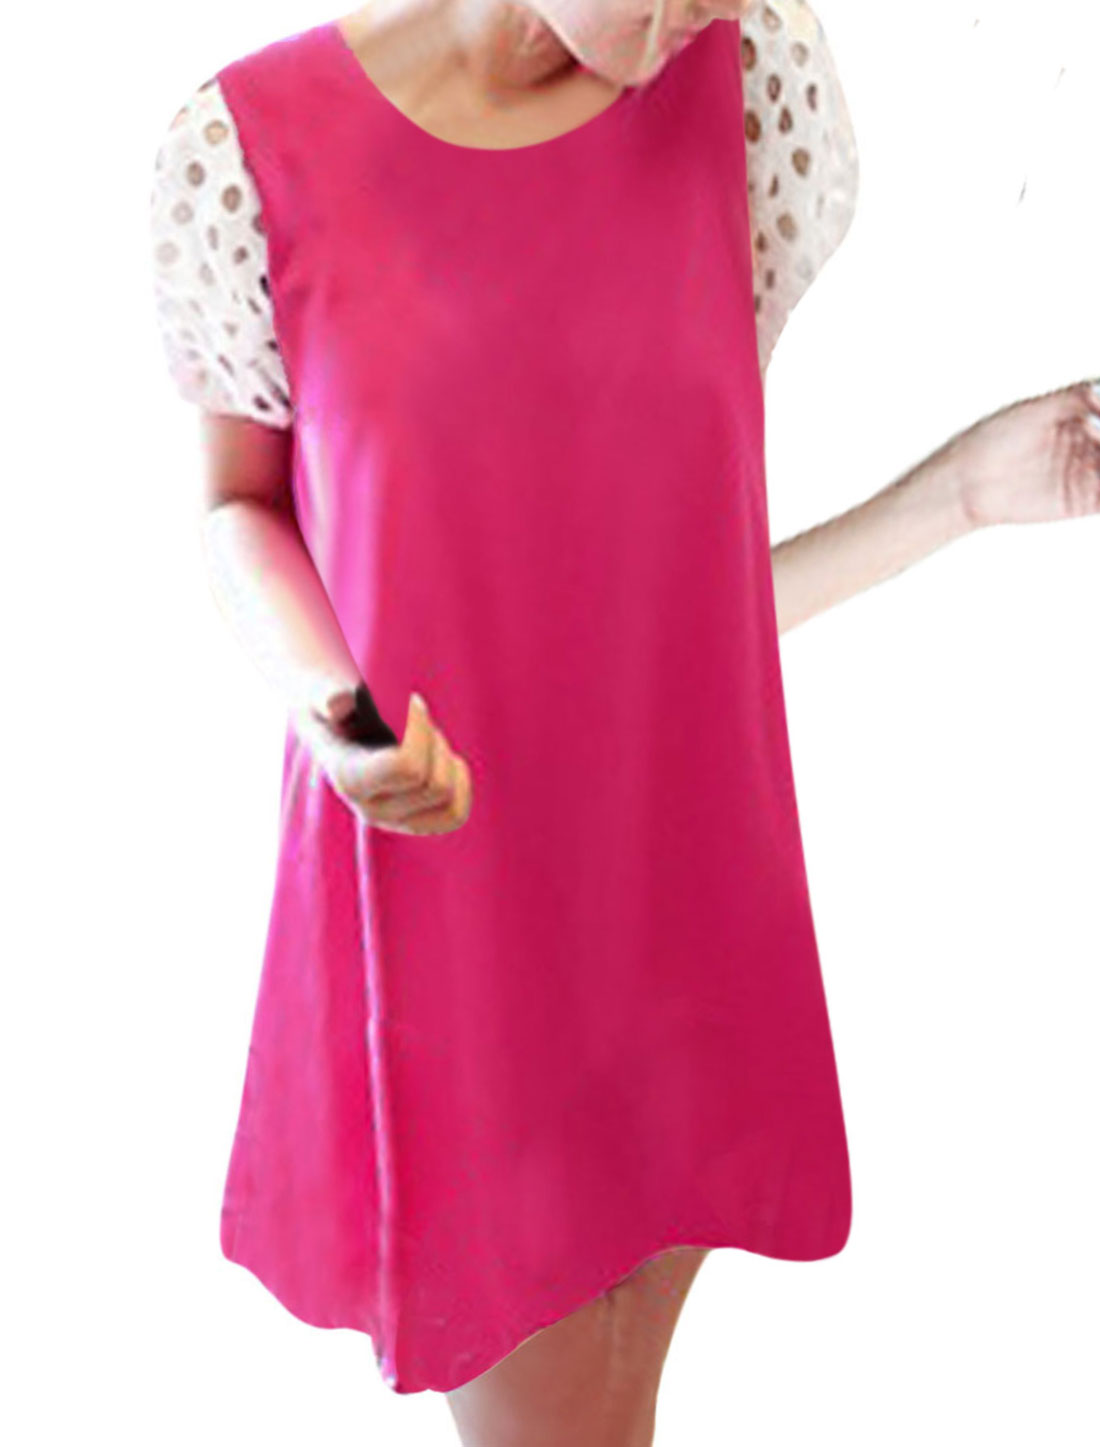 Lady Chic Short Cutout Splice Puff Sleeve Design Fuchsia Casual Mini Dress XS